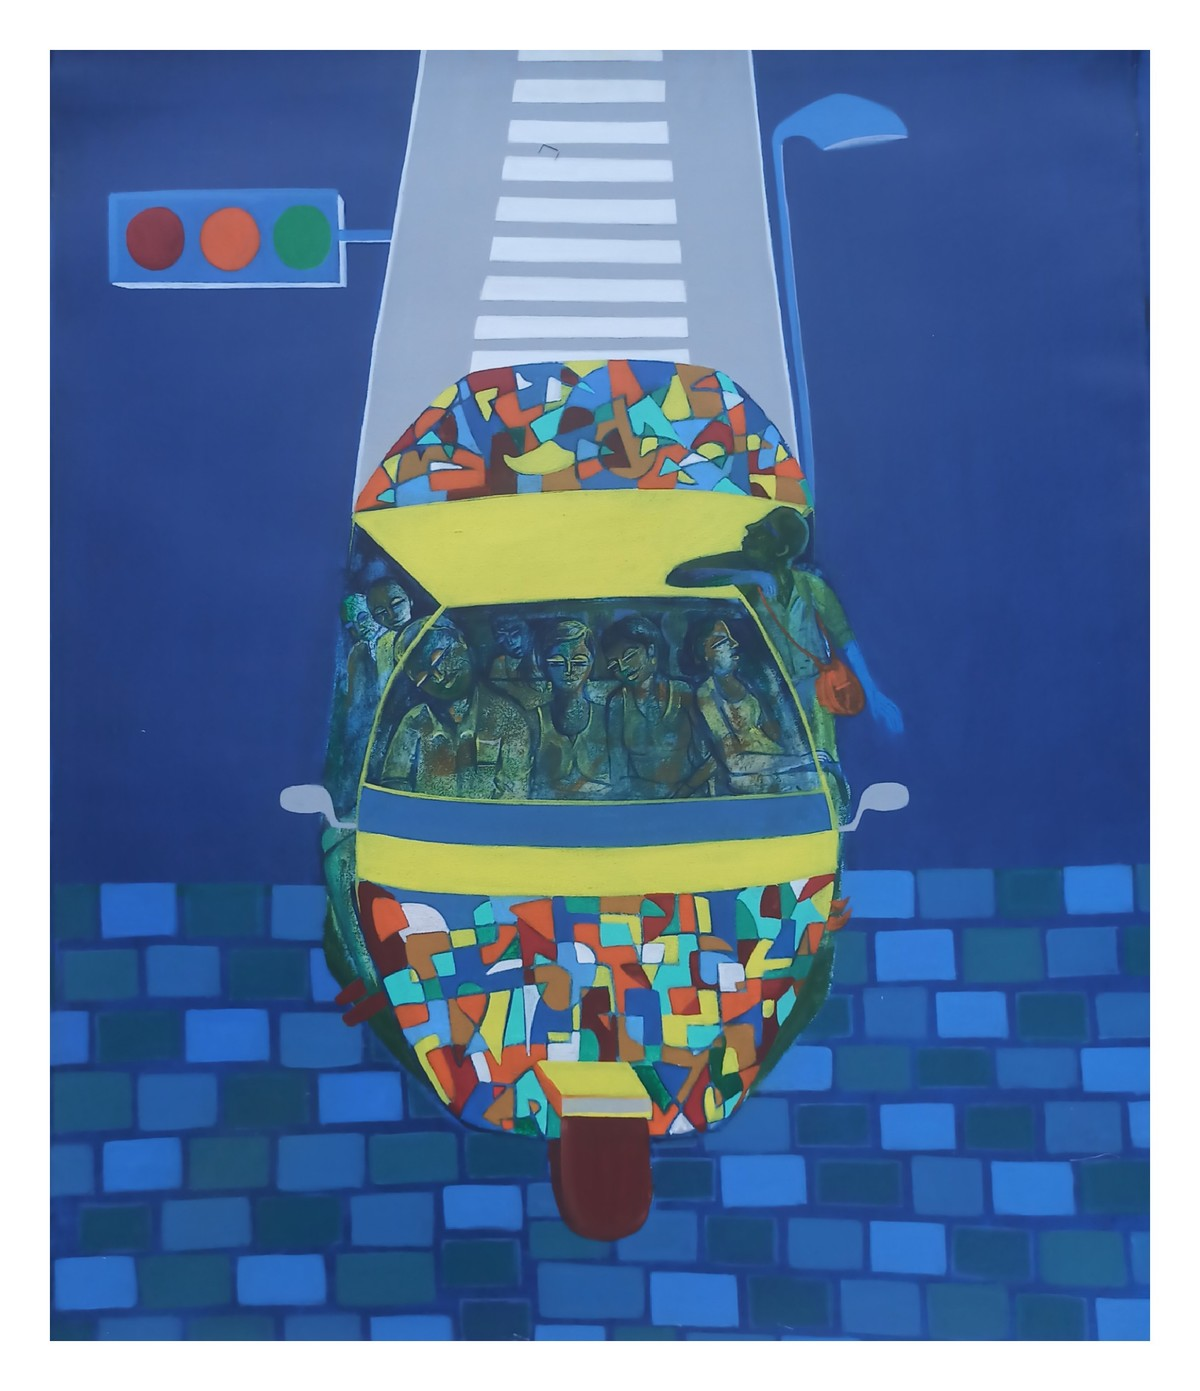 Life on wheels-ll by Madhuri Jain, Conceptual Painting, Acrylic on Canvas, Bdazzled Blue color